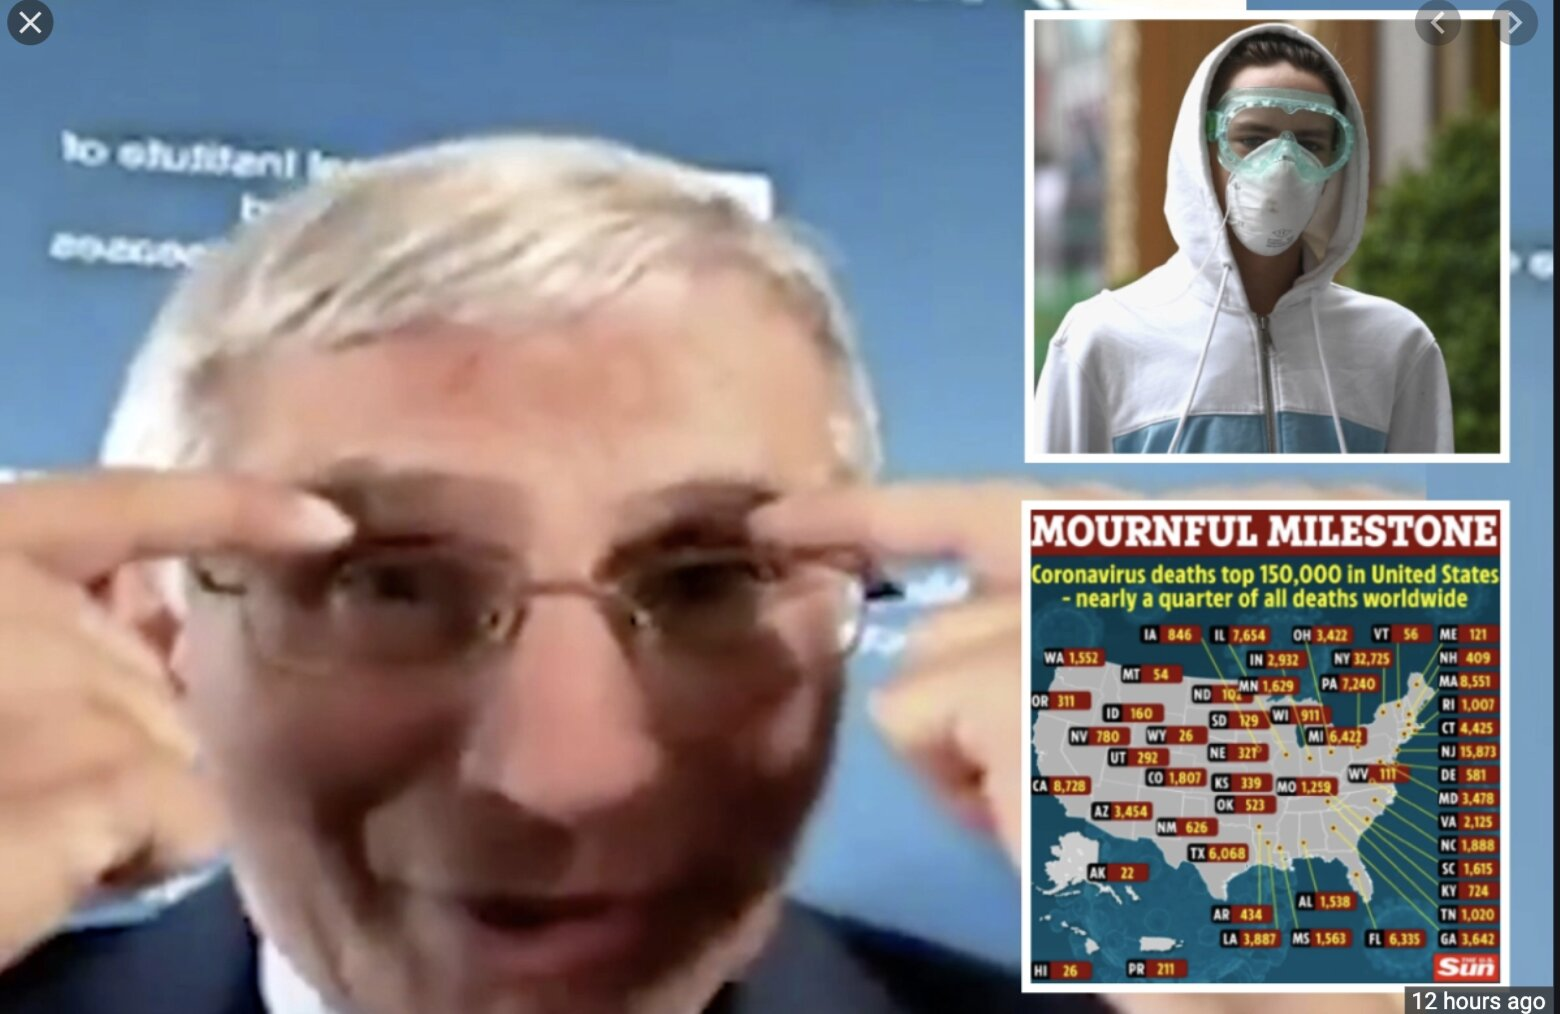 They're f*ing with you SHEEP: Dr. Fauci: Wear goggles or eye shields to prevent spread of COVID-19; flu vaccine a must